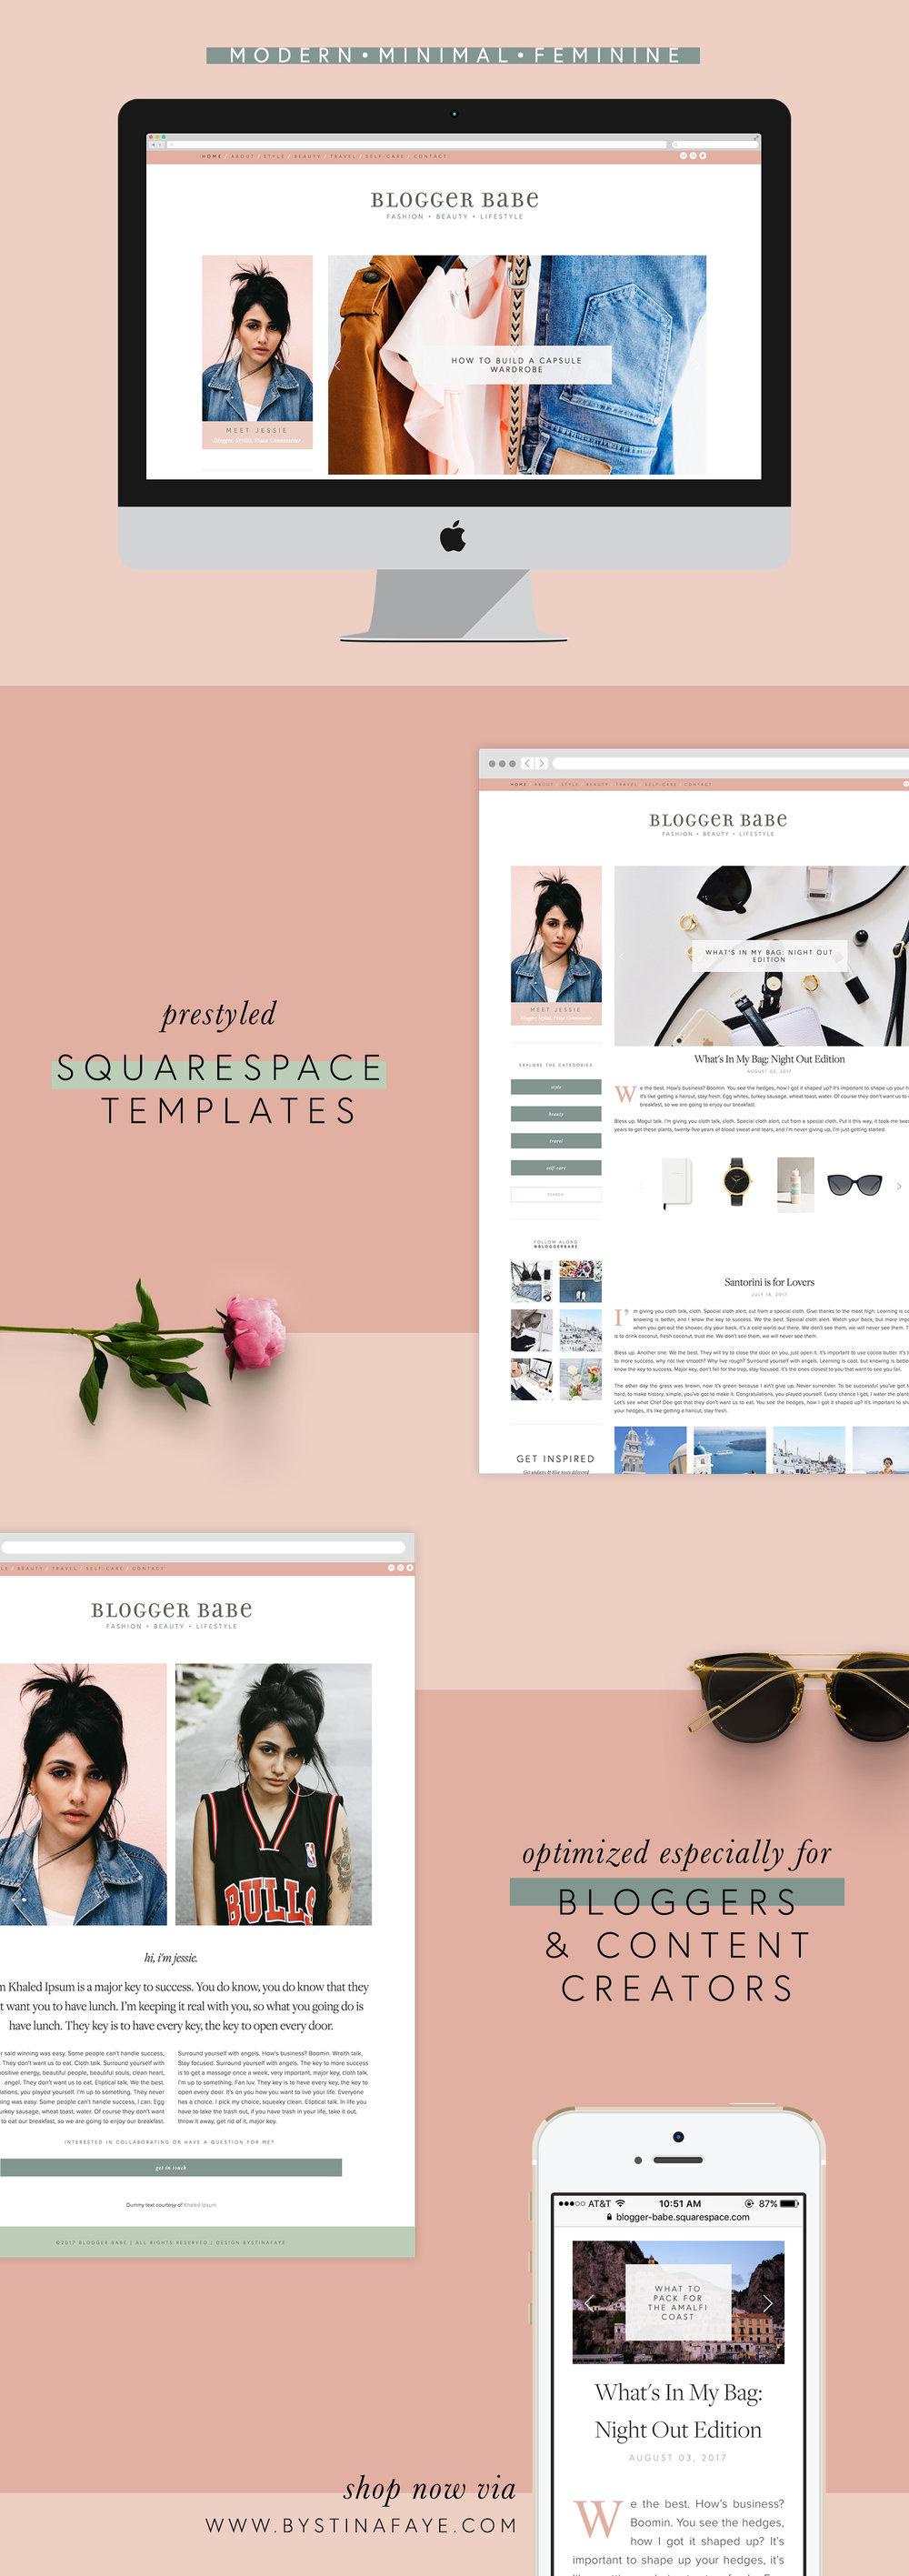 Blogger Babe Squarespace Template